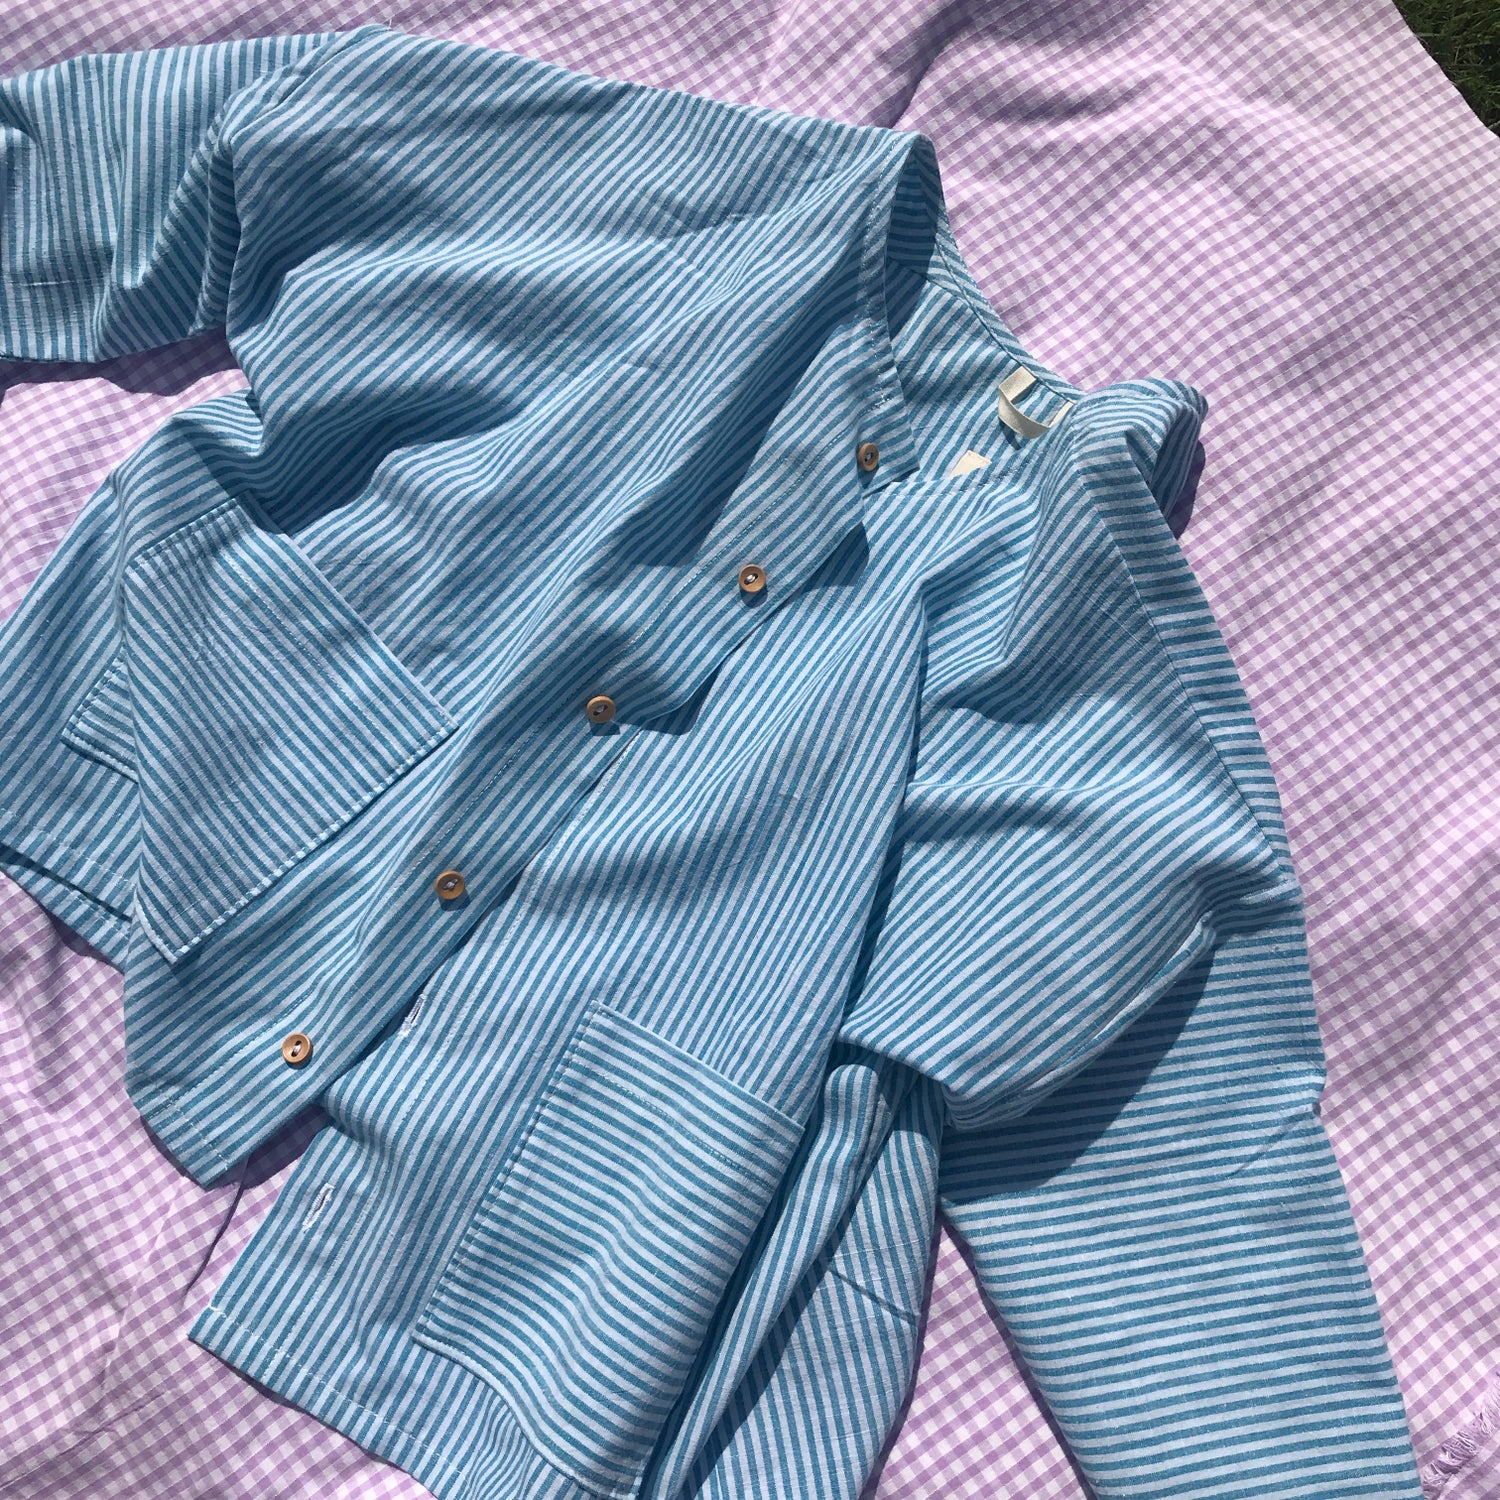 Image of the beach jacket